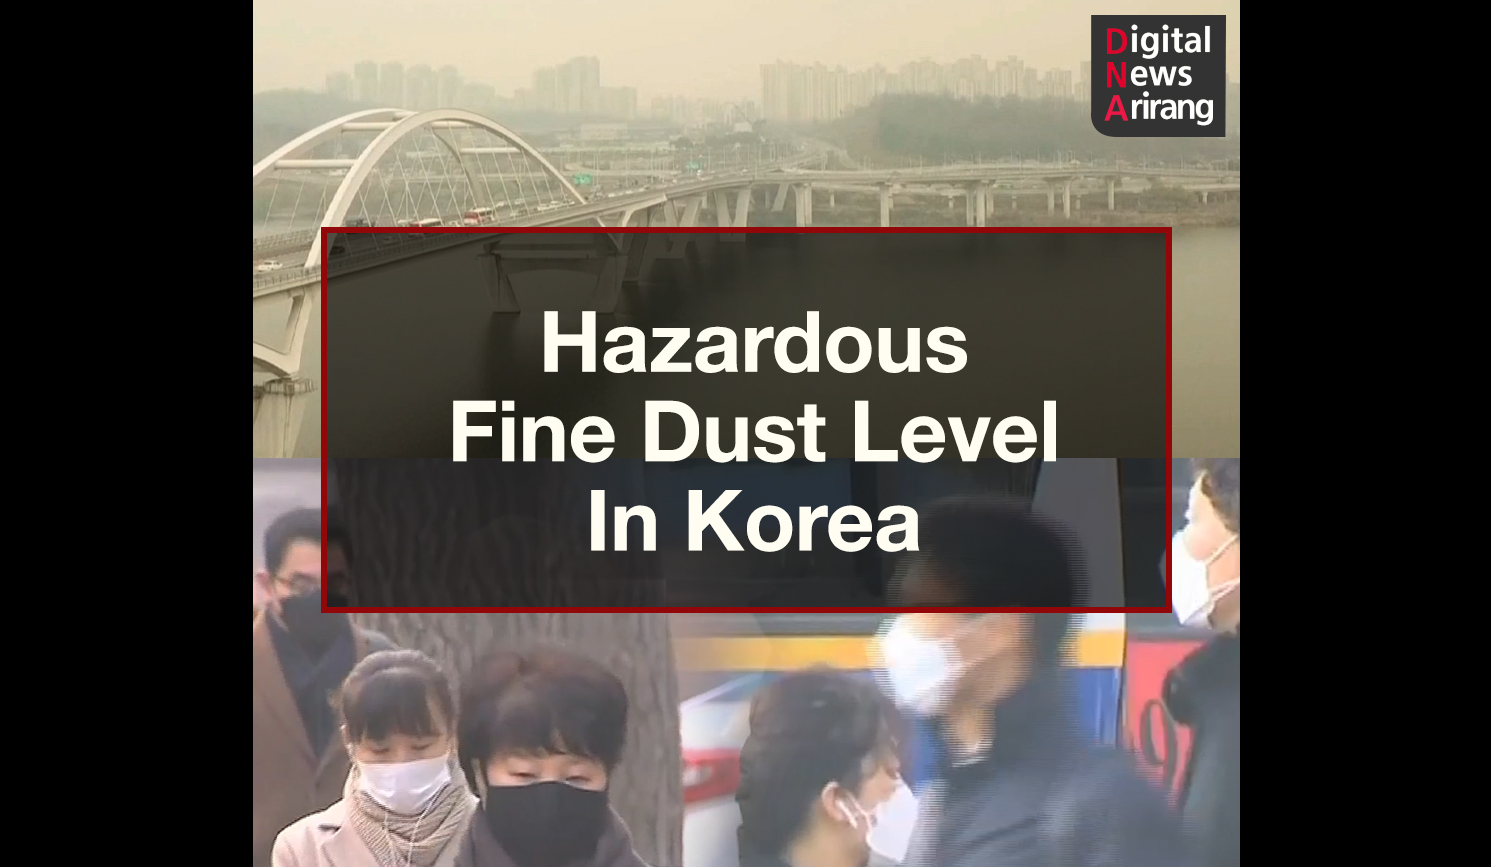 [DNA]Hazardous Fine Dust Level In Korea